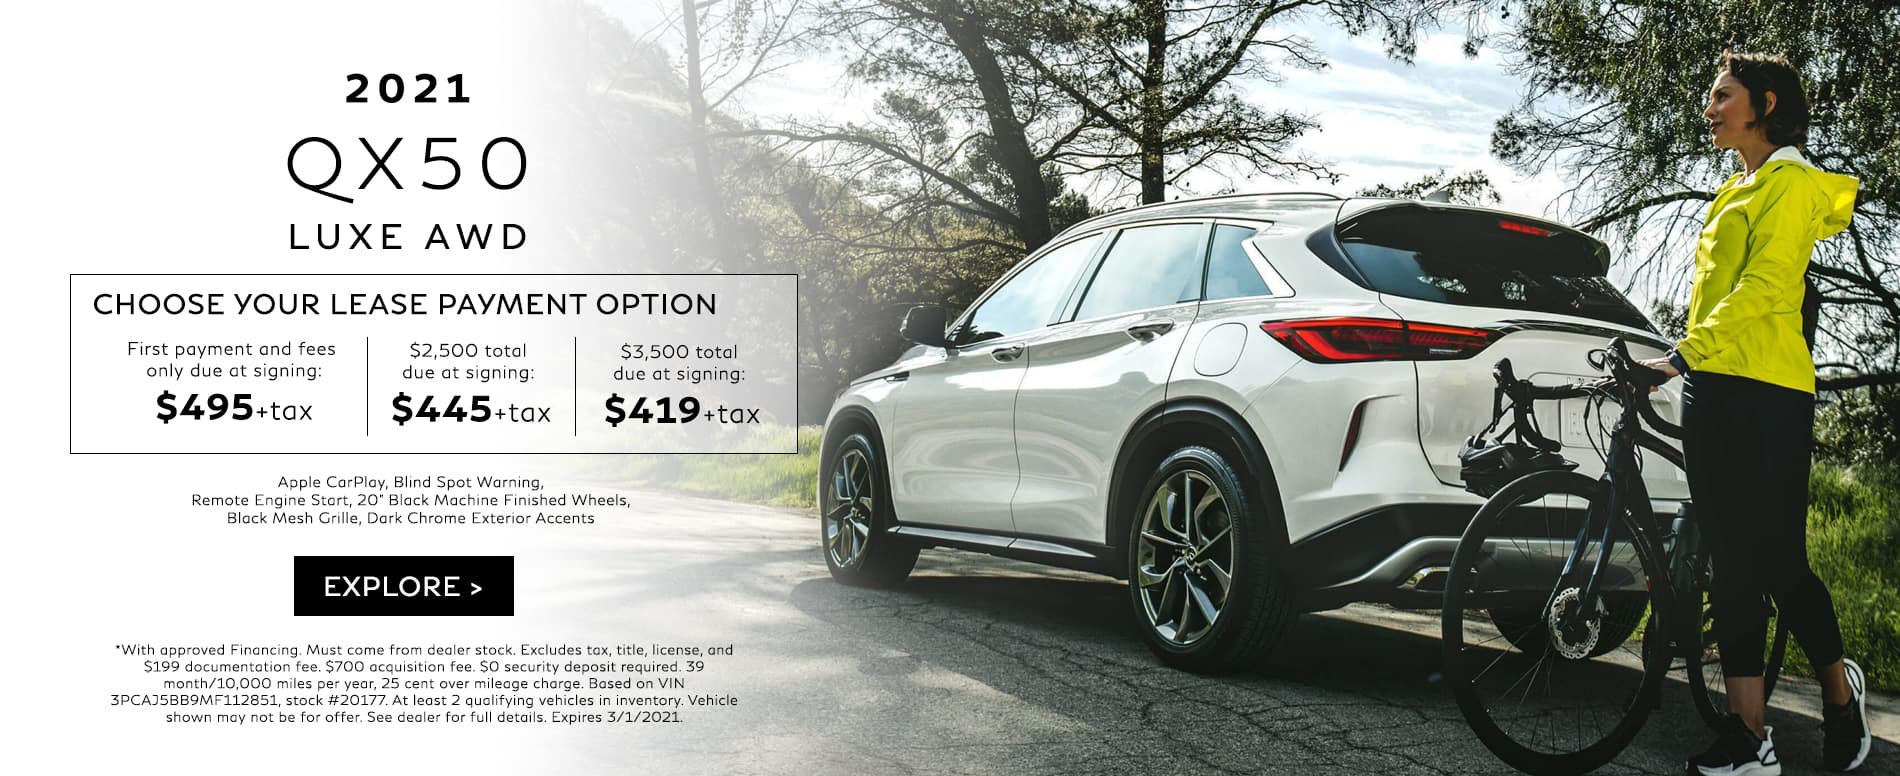 Choose your lease payment option on a new 2021 QX50 Luxe AWD.